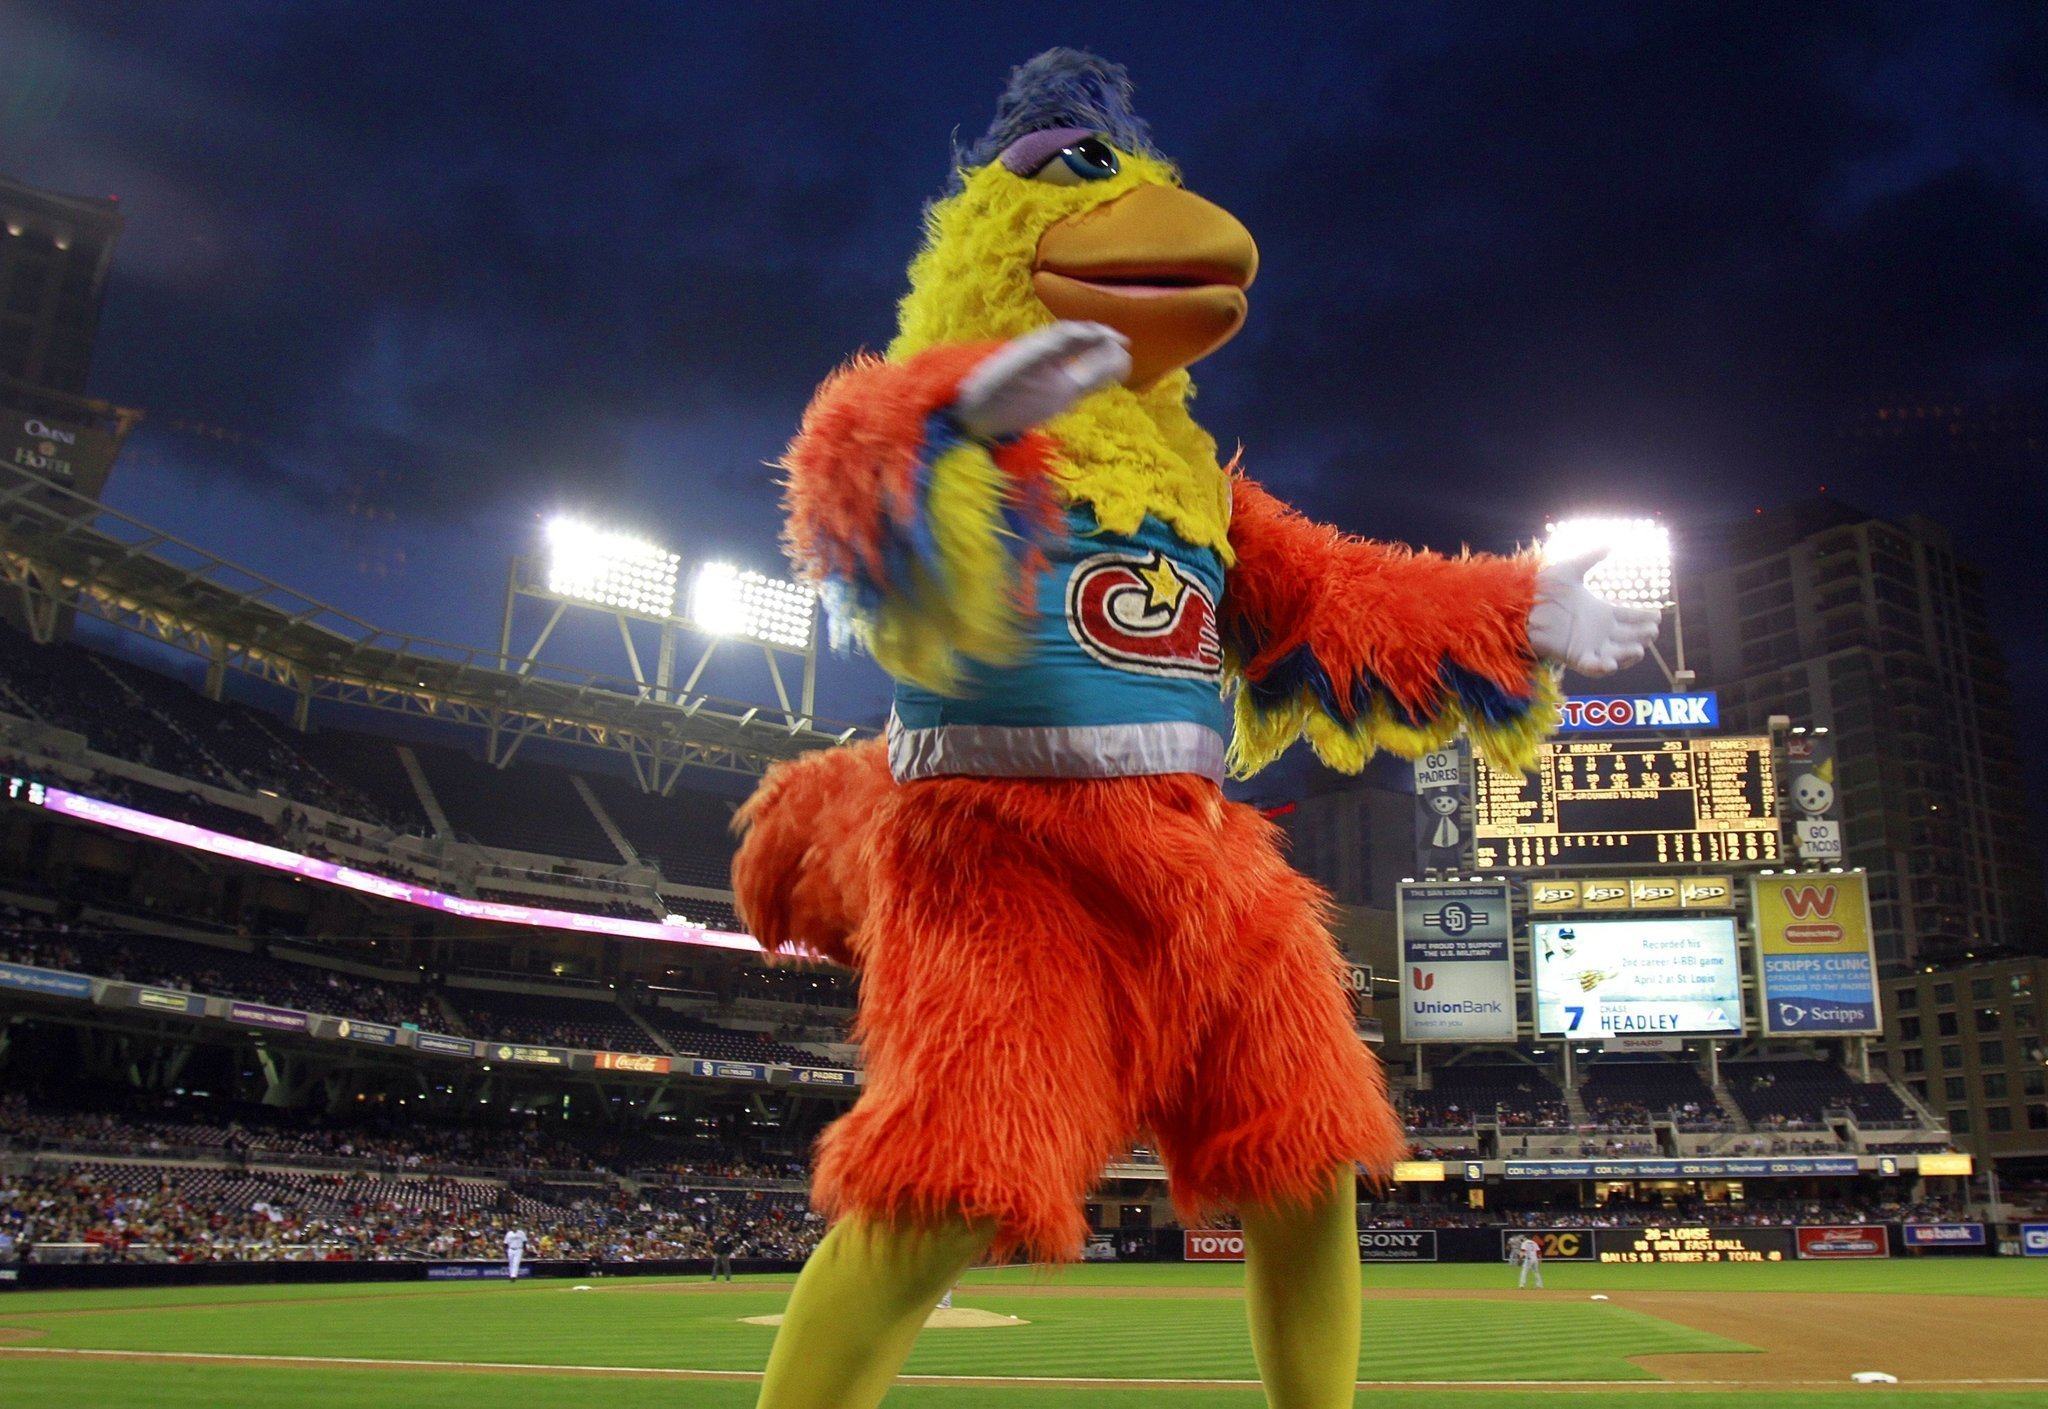 The San Diego is one of the most loved and entertaining mascots in sports